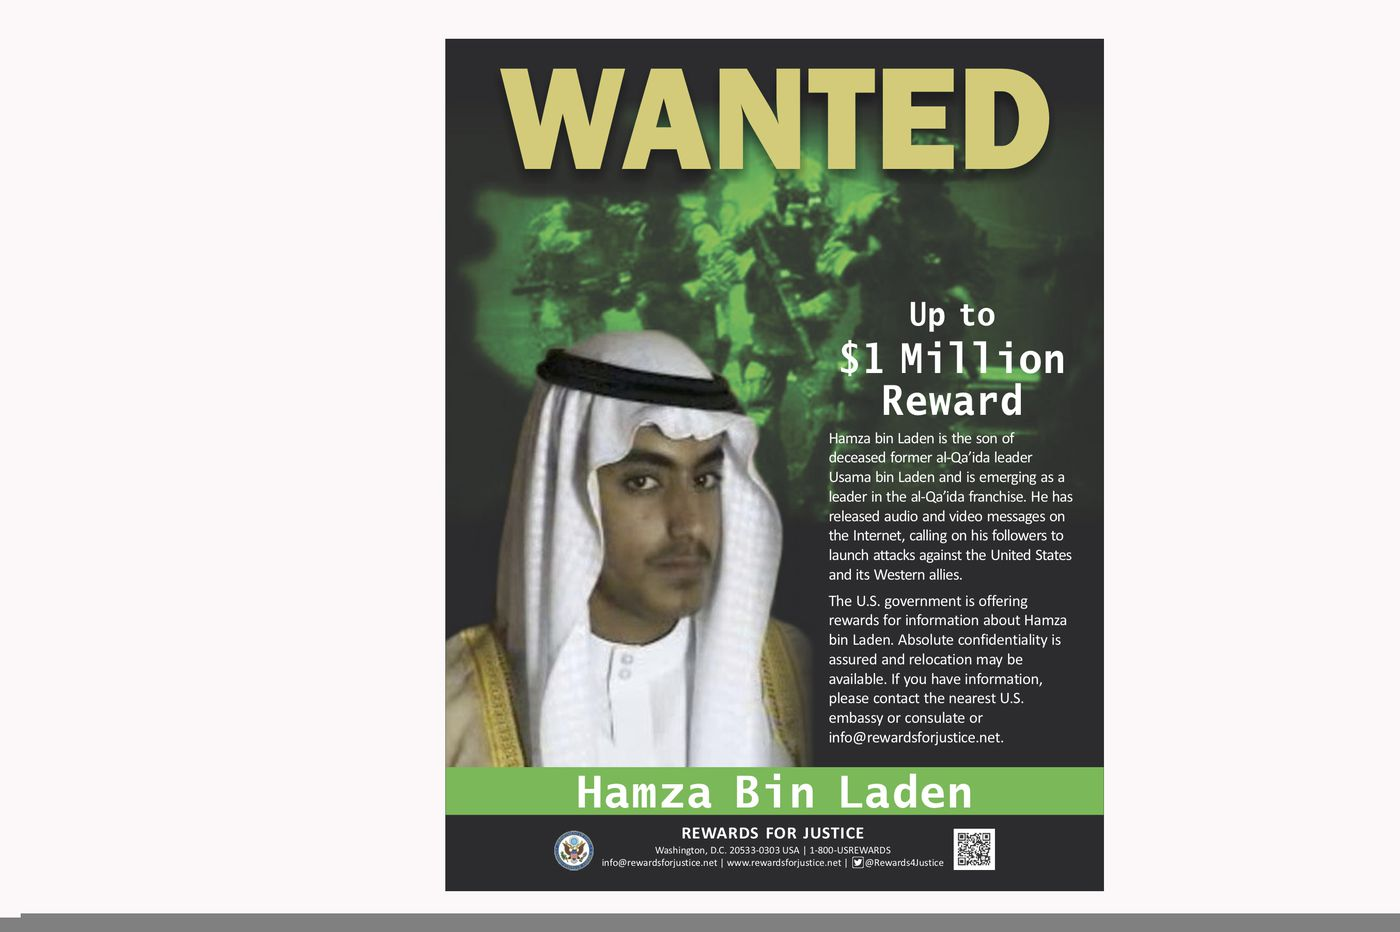 Bin Laden son stripped of Saudi passport as United States offers $1m bounty